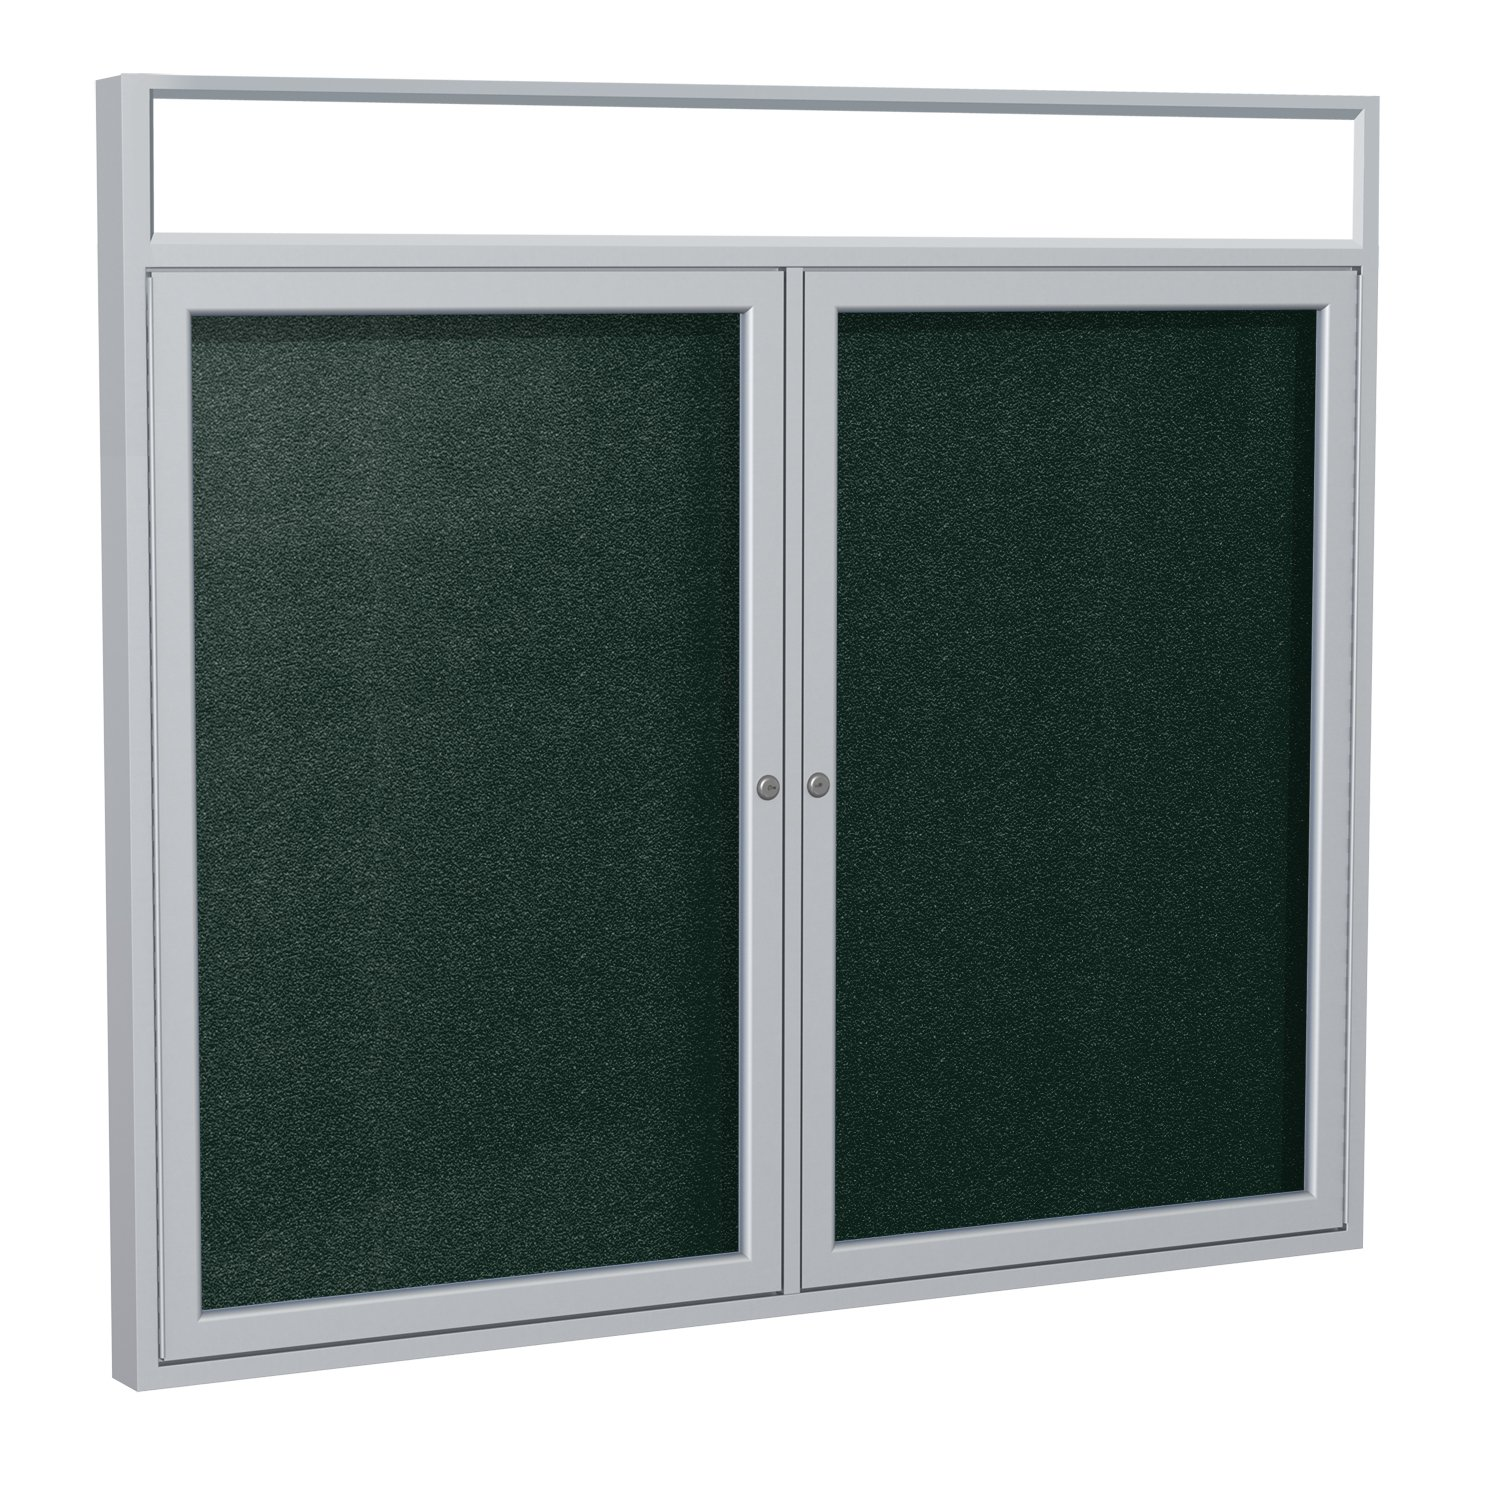 Ghent 36 x 48 Inches Outdoor Satin Frame Enclosed Vinyl Bulletin Board with Headliner , Ebony , Made in the USA